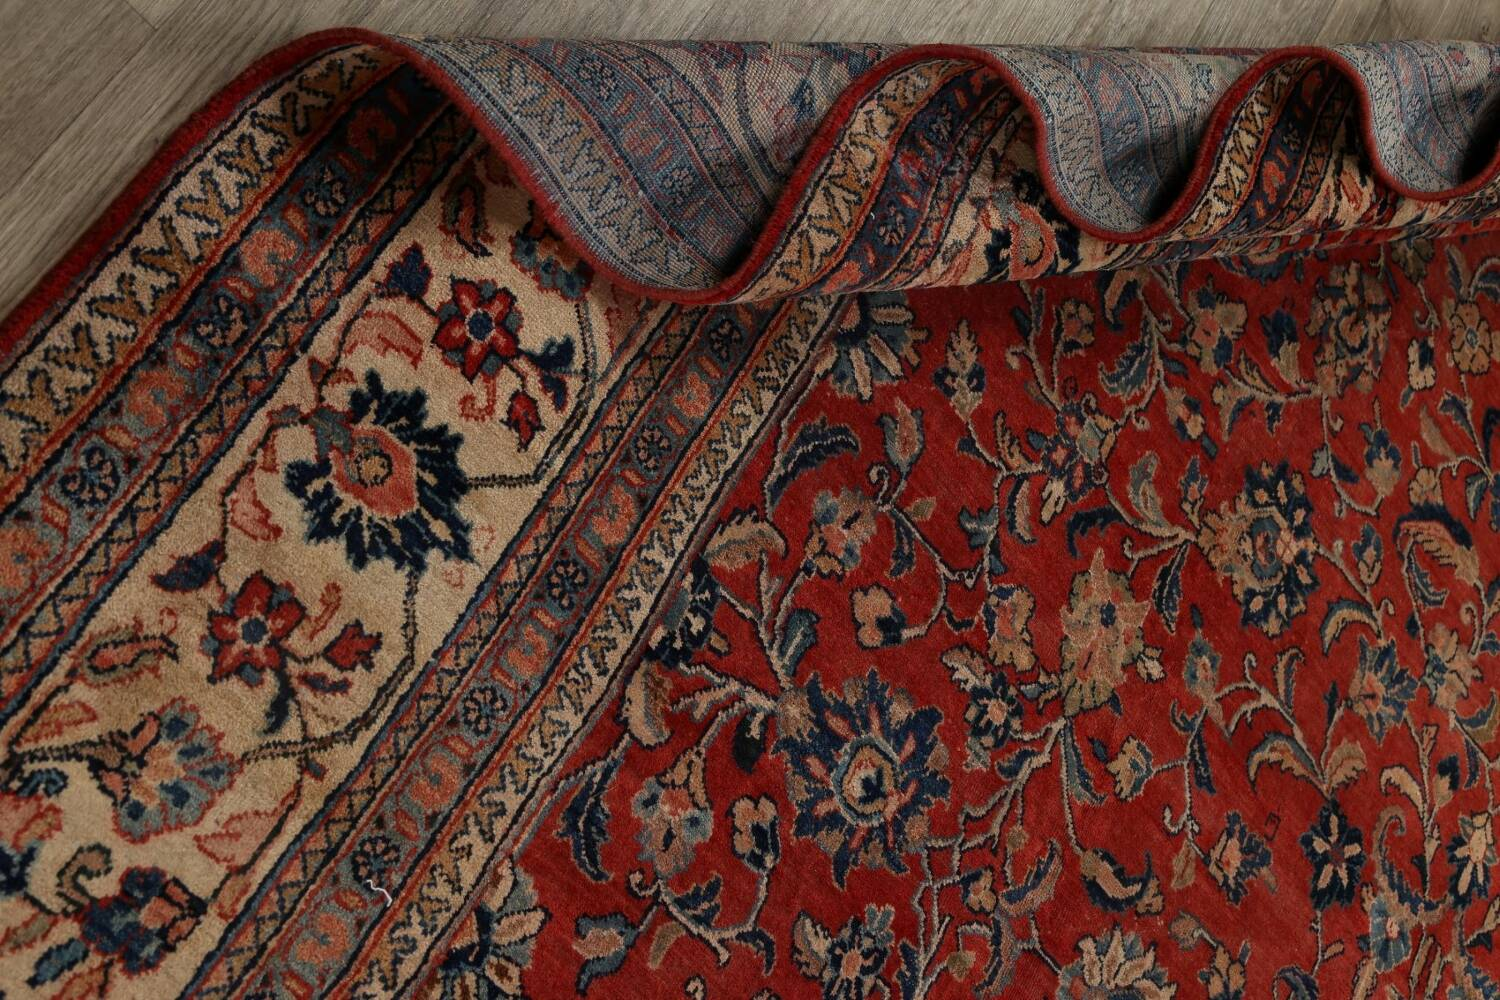 Antique Floral Mahal Persian Area Rug 10x14 image 21